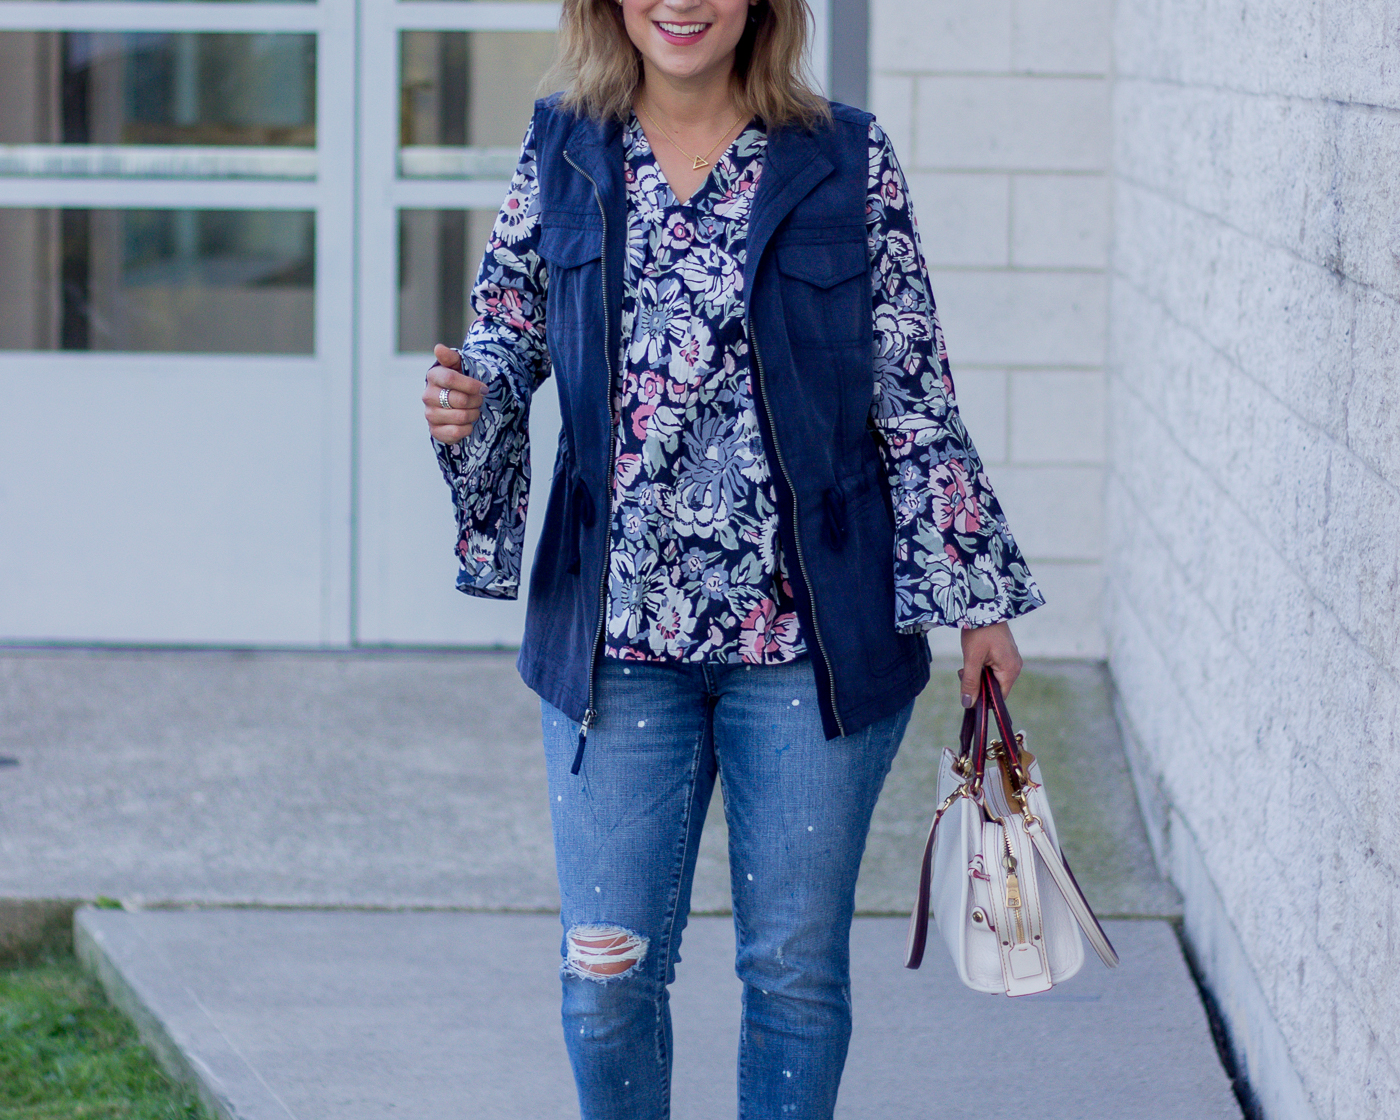 Summer to fall outfit idea, wearing a dark floral bell sleeve top from Amazon and a Merona vest with ripped jeans